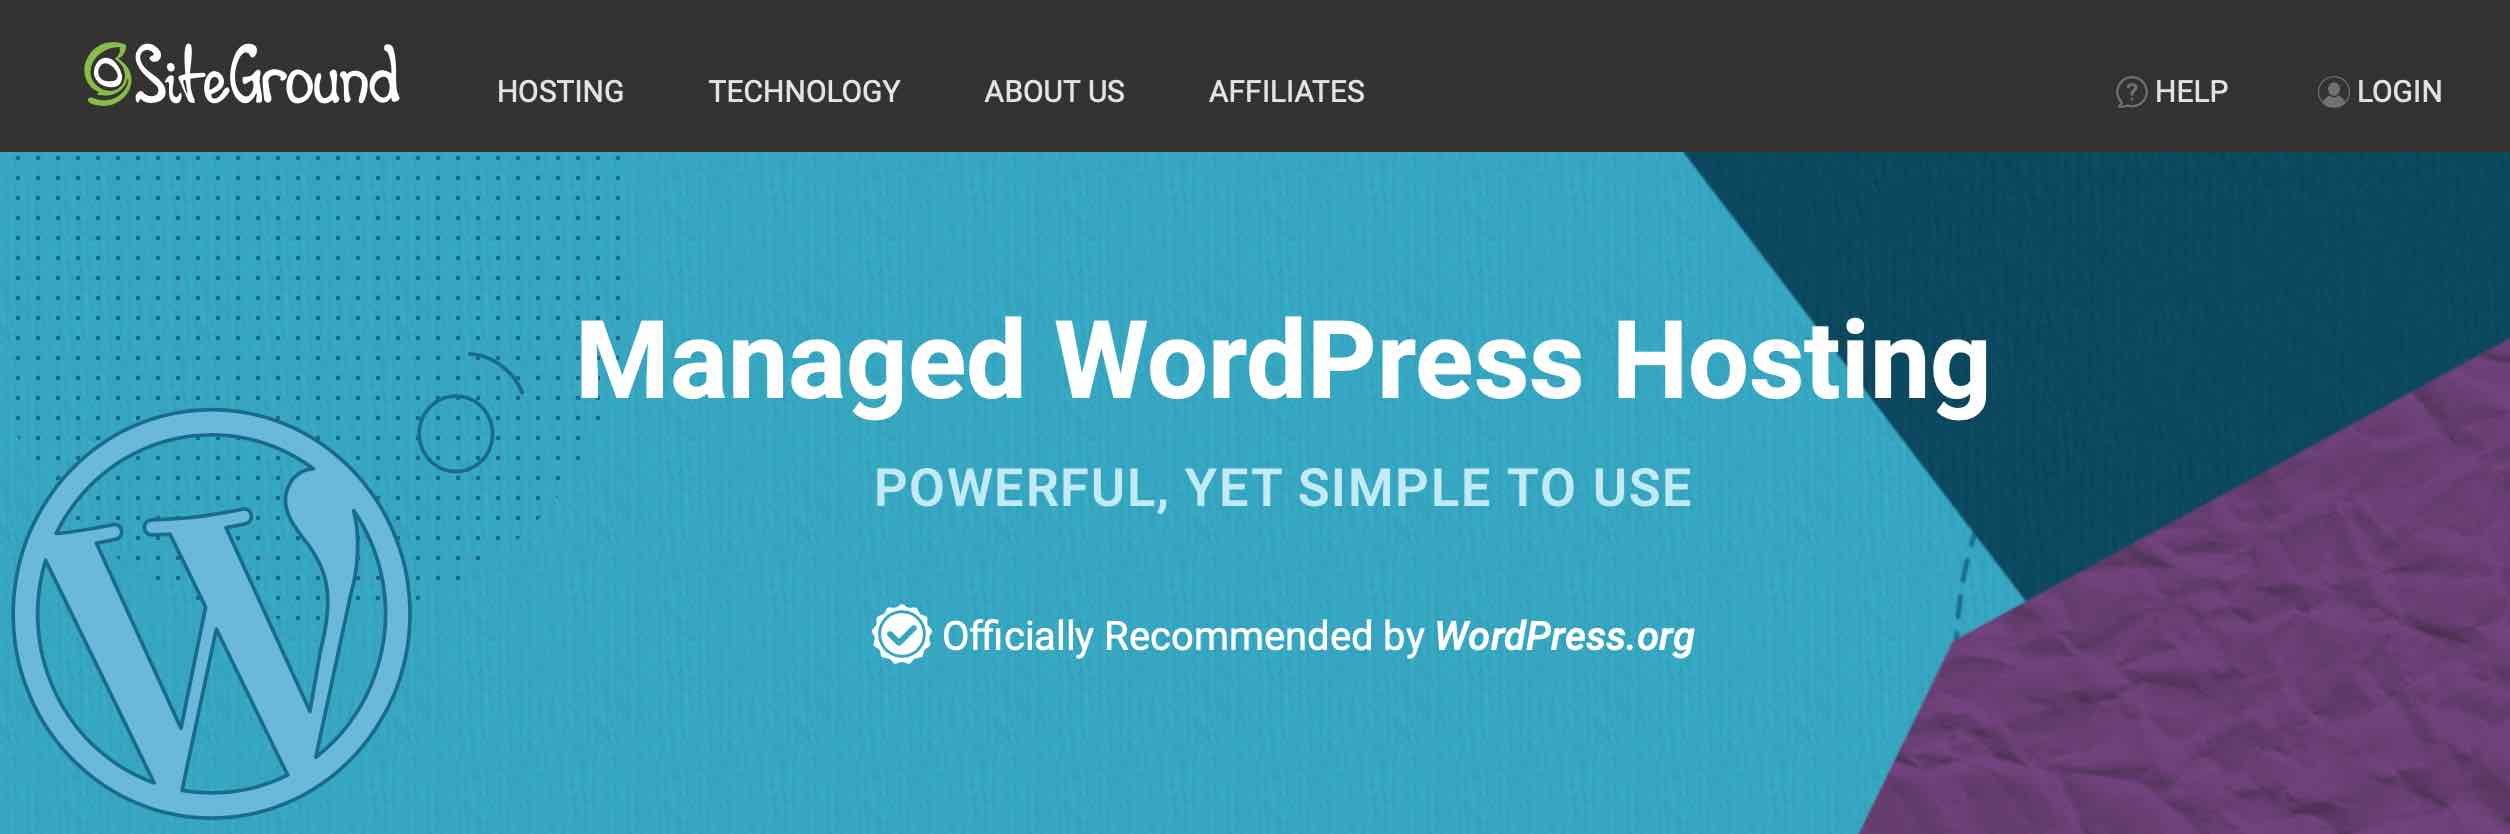 Officially Recommended by WordPress.org